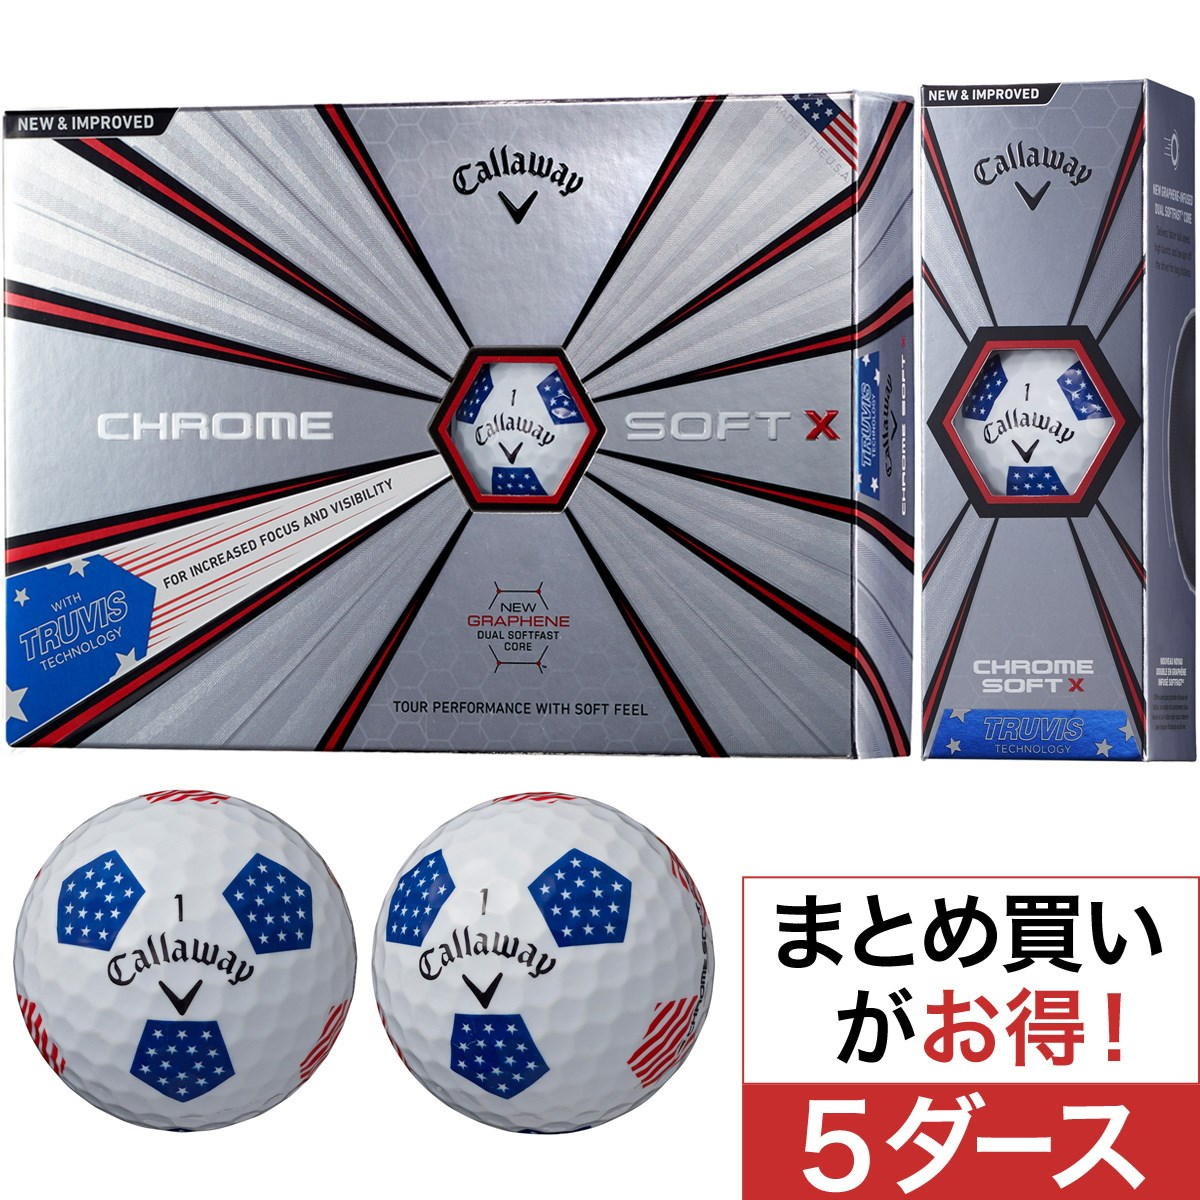 CHROME SOFT X 18 TRUVIS ボール 5ダースセット